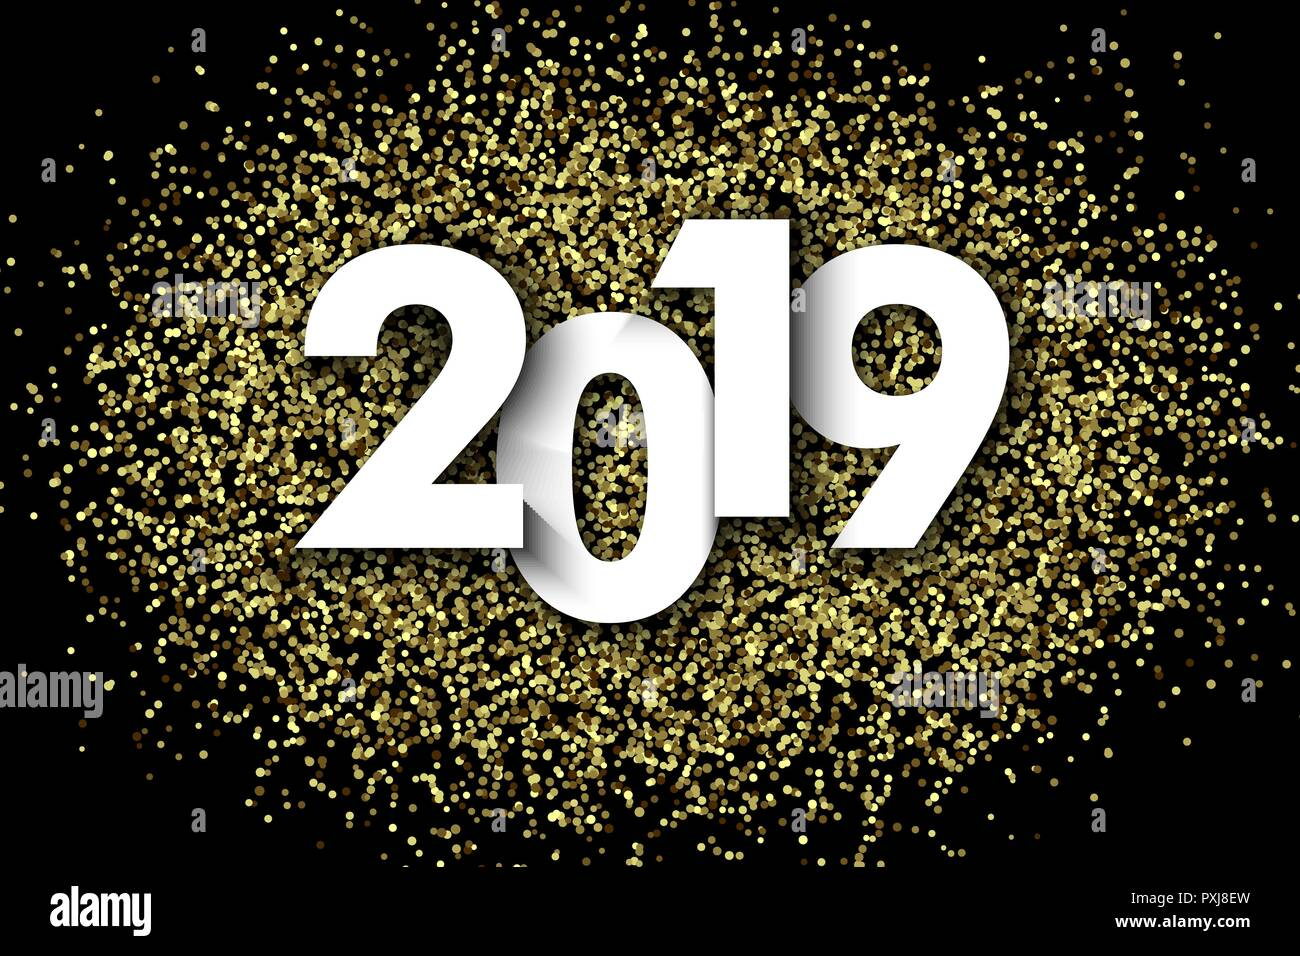 2019 new year background with gold glitter confetti festive premium design template for holiday greeting card